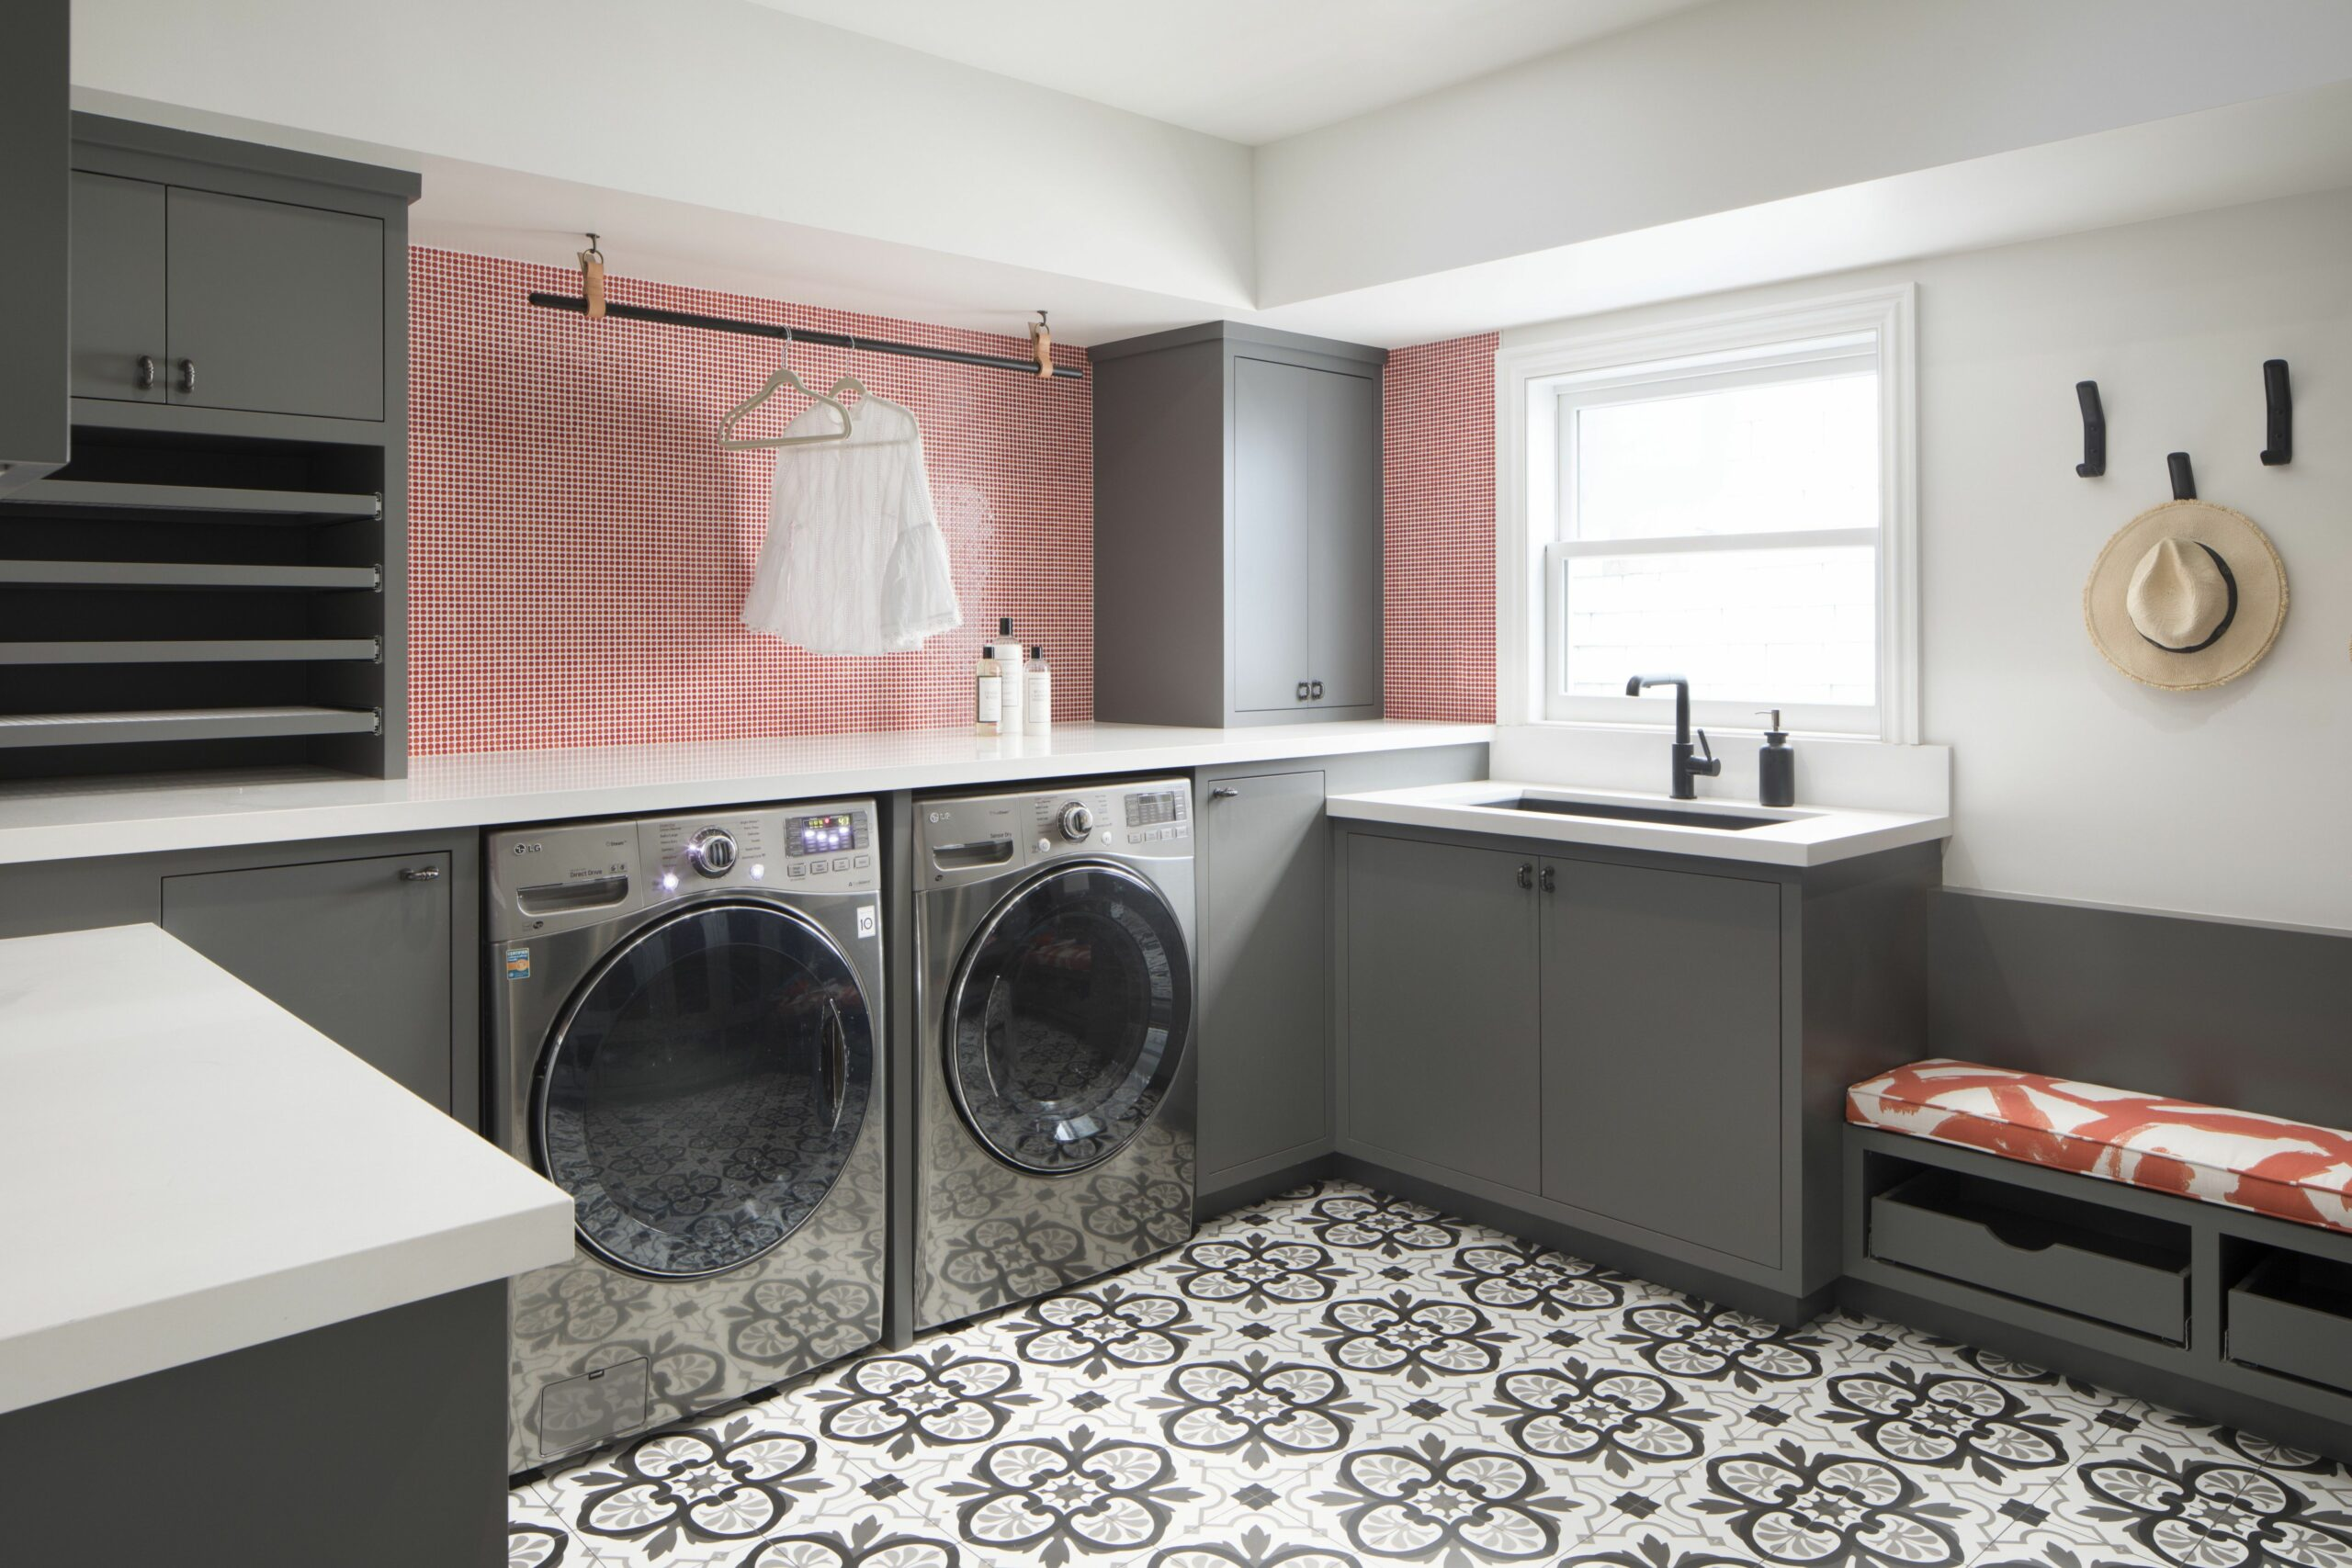 10 Best Laundry Rooms - Lovely & Functional Laundry Room Ideas - new laundry room ideas